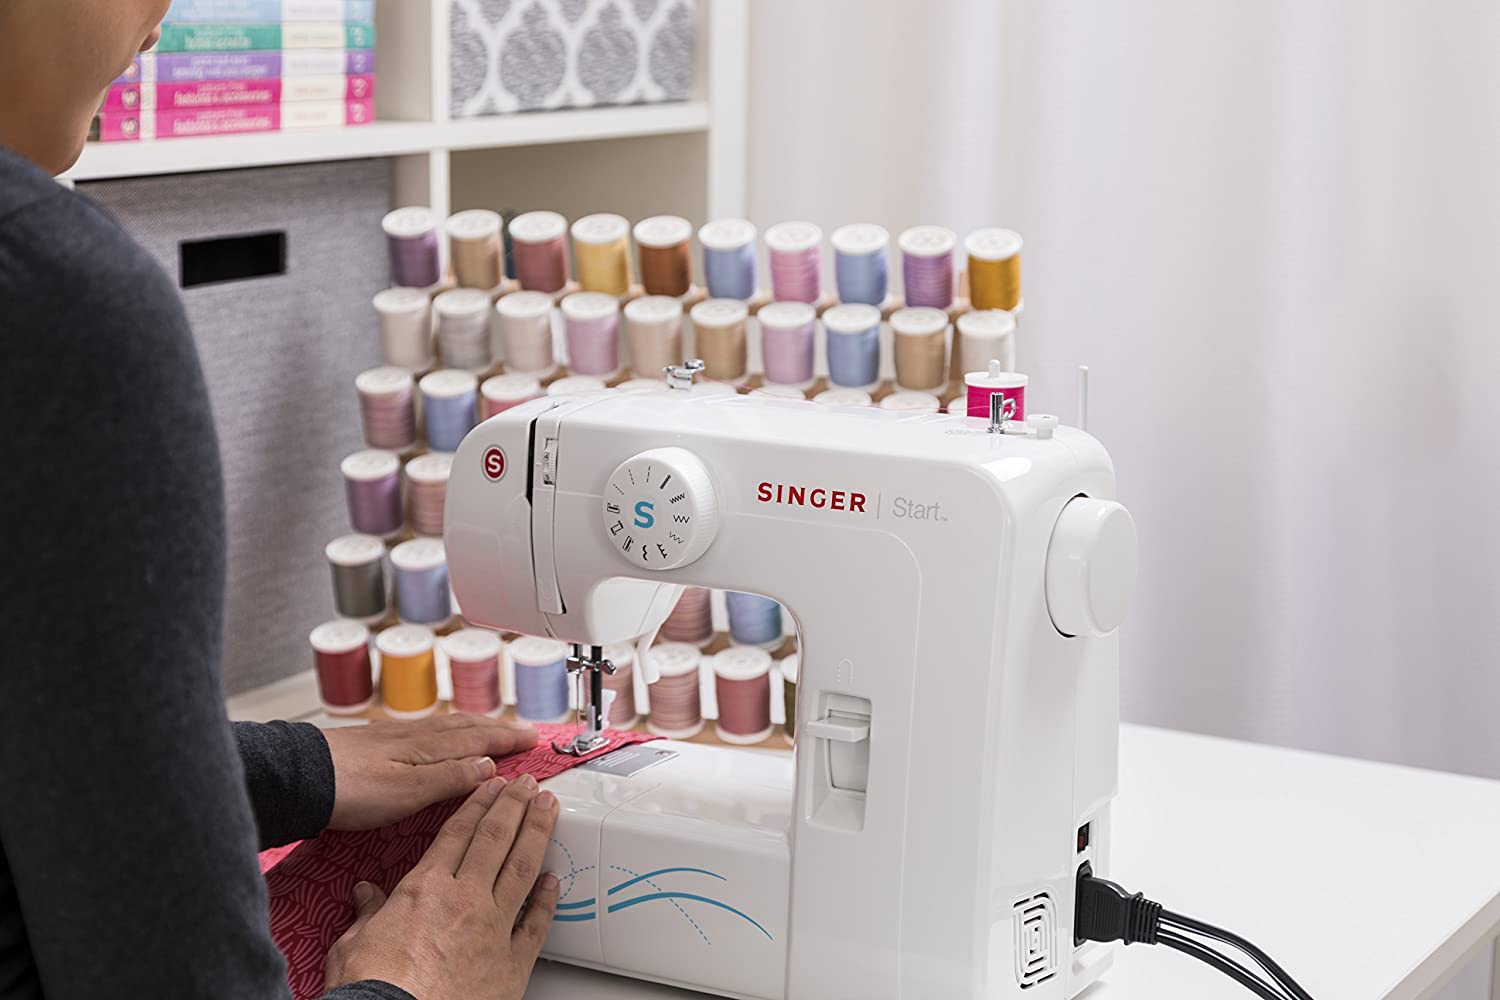 Amazon.com: SINGER | Start 1304 6 Built-in Stitches, Free Arm Best Sewing  Machine for Beginners